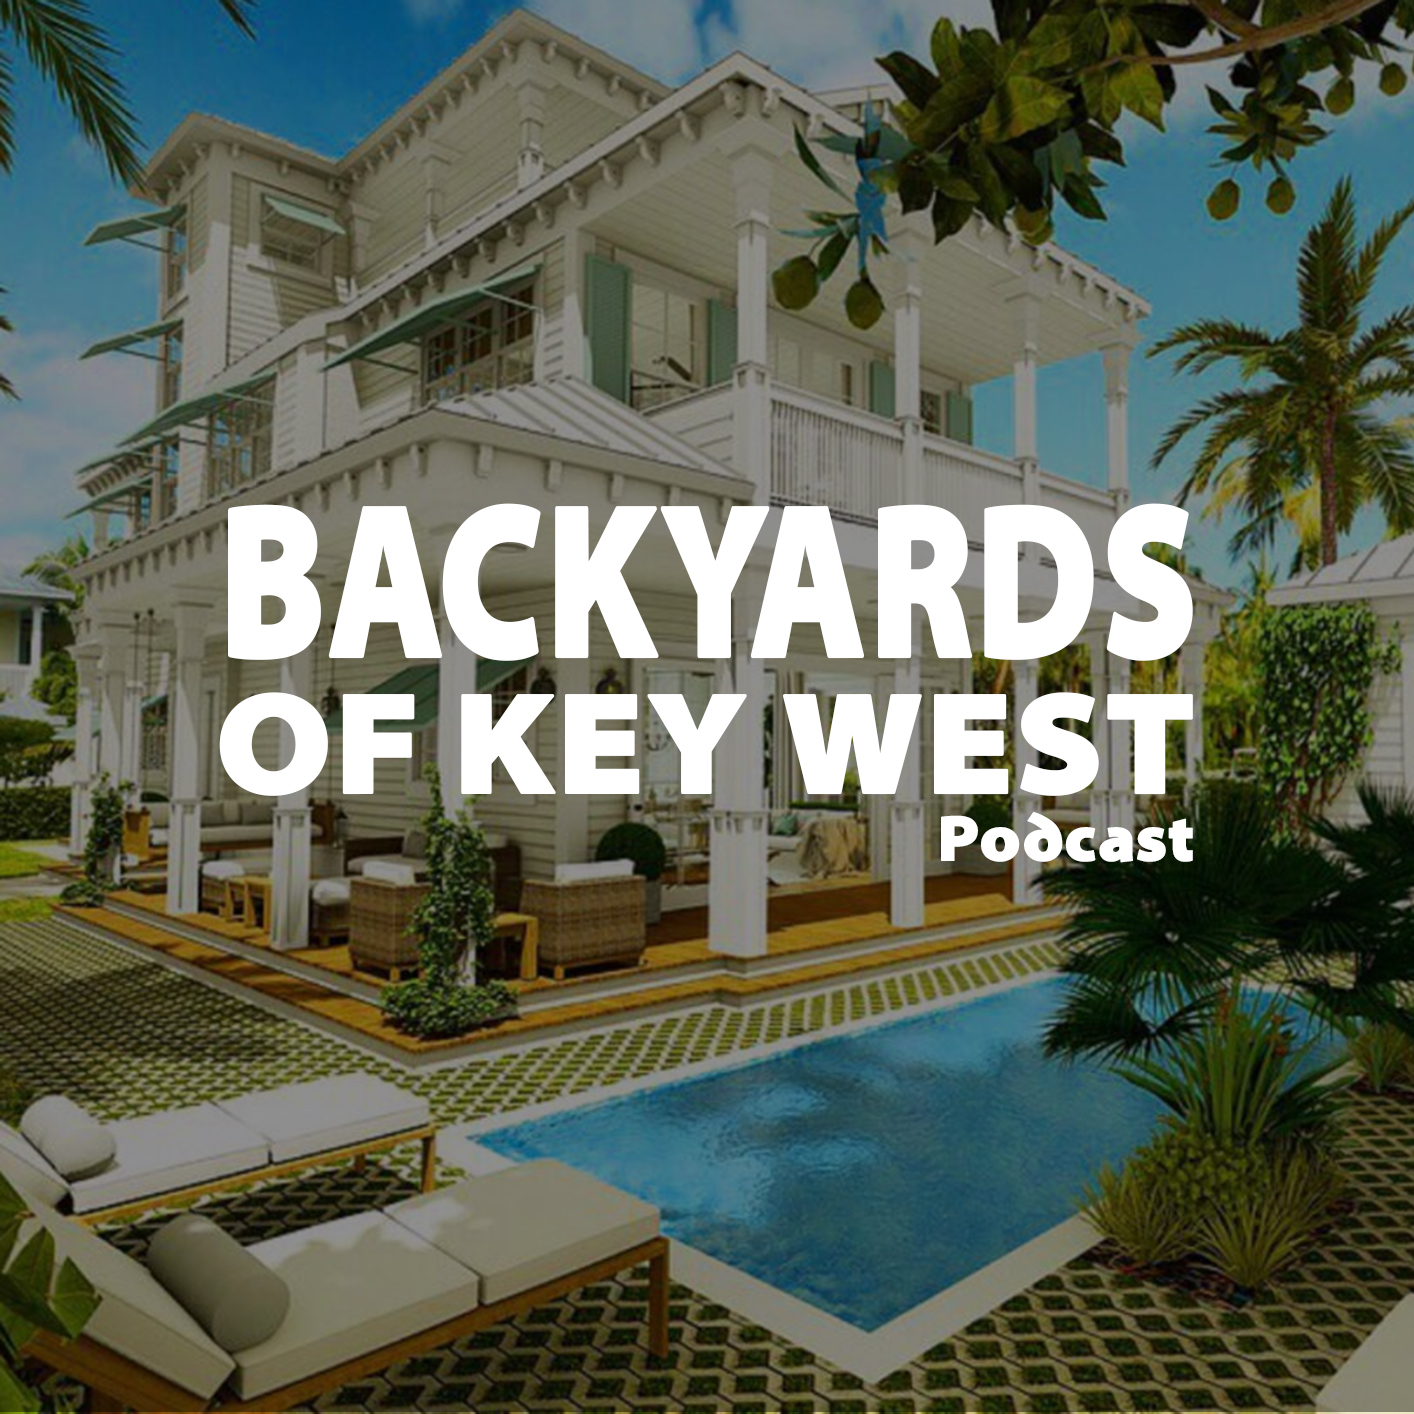 Backyards of Key West Podcast with Mark Baratto 86: Lost ...